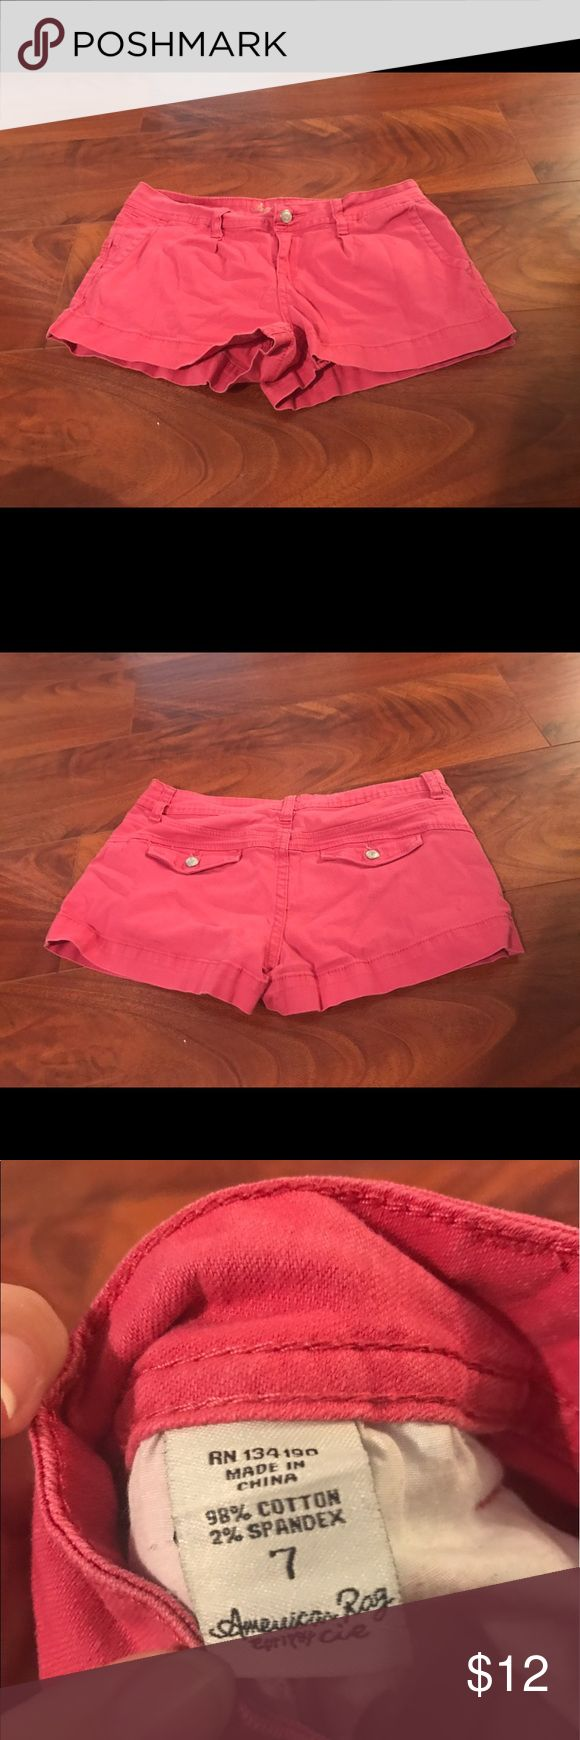 American Rag Pink Chino Shorts American Rag Pink Chino Shorts with Button Flap back pocket detail American Rag Shorts Jean Shorts